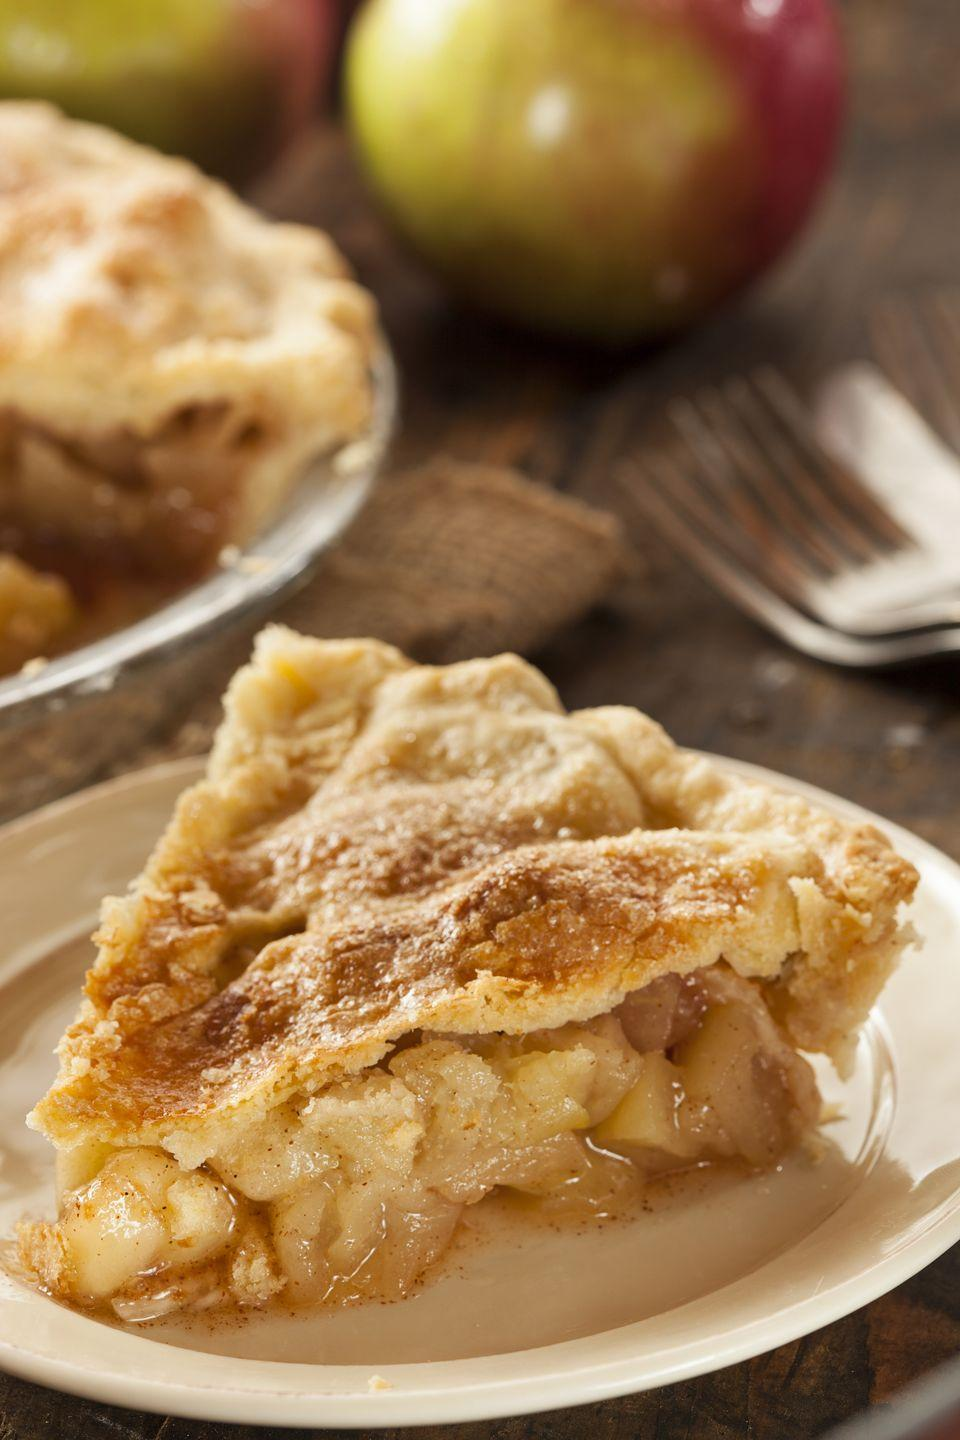 "<p>This apple pie recipe may be our fastest one yet. Make it in just over half an hour.</p><p><a href=""https://www.goodhousekeeping.com/food-recipes/dessert/a19293/apple-pie-recipe/"" rel=""nofollow noopener"" target=""_blank"" data-ylk=""slk:Get the recipe for The Easiest Apple Pie »"" class=""link rapid-noclick-resp""><em>Get the recipe for The Easiest Apple Pie »</em></a></p>"